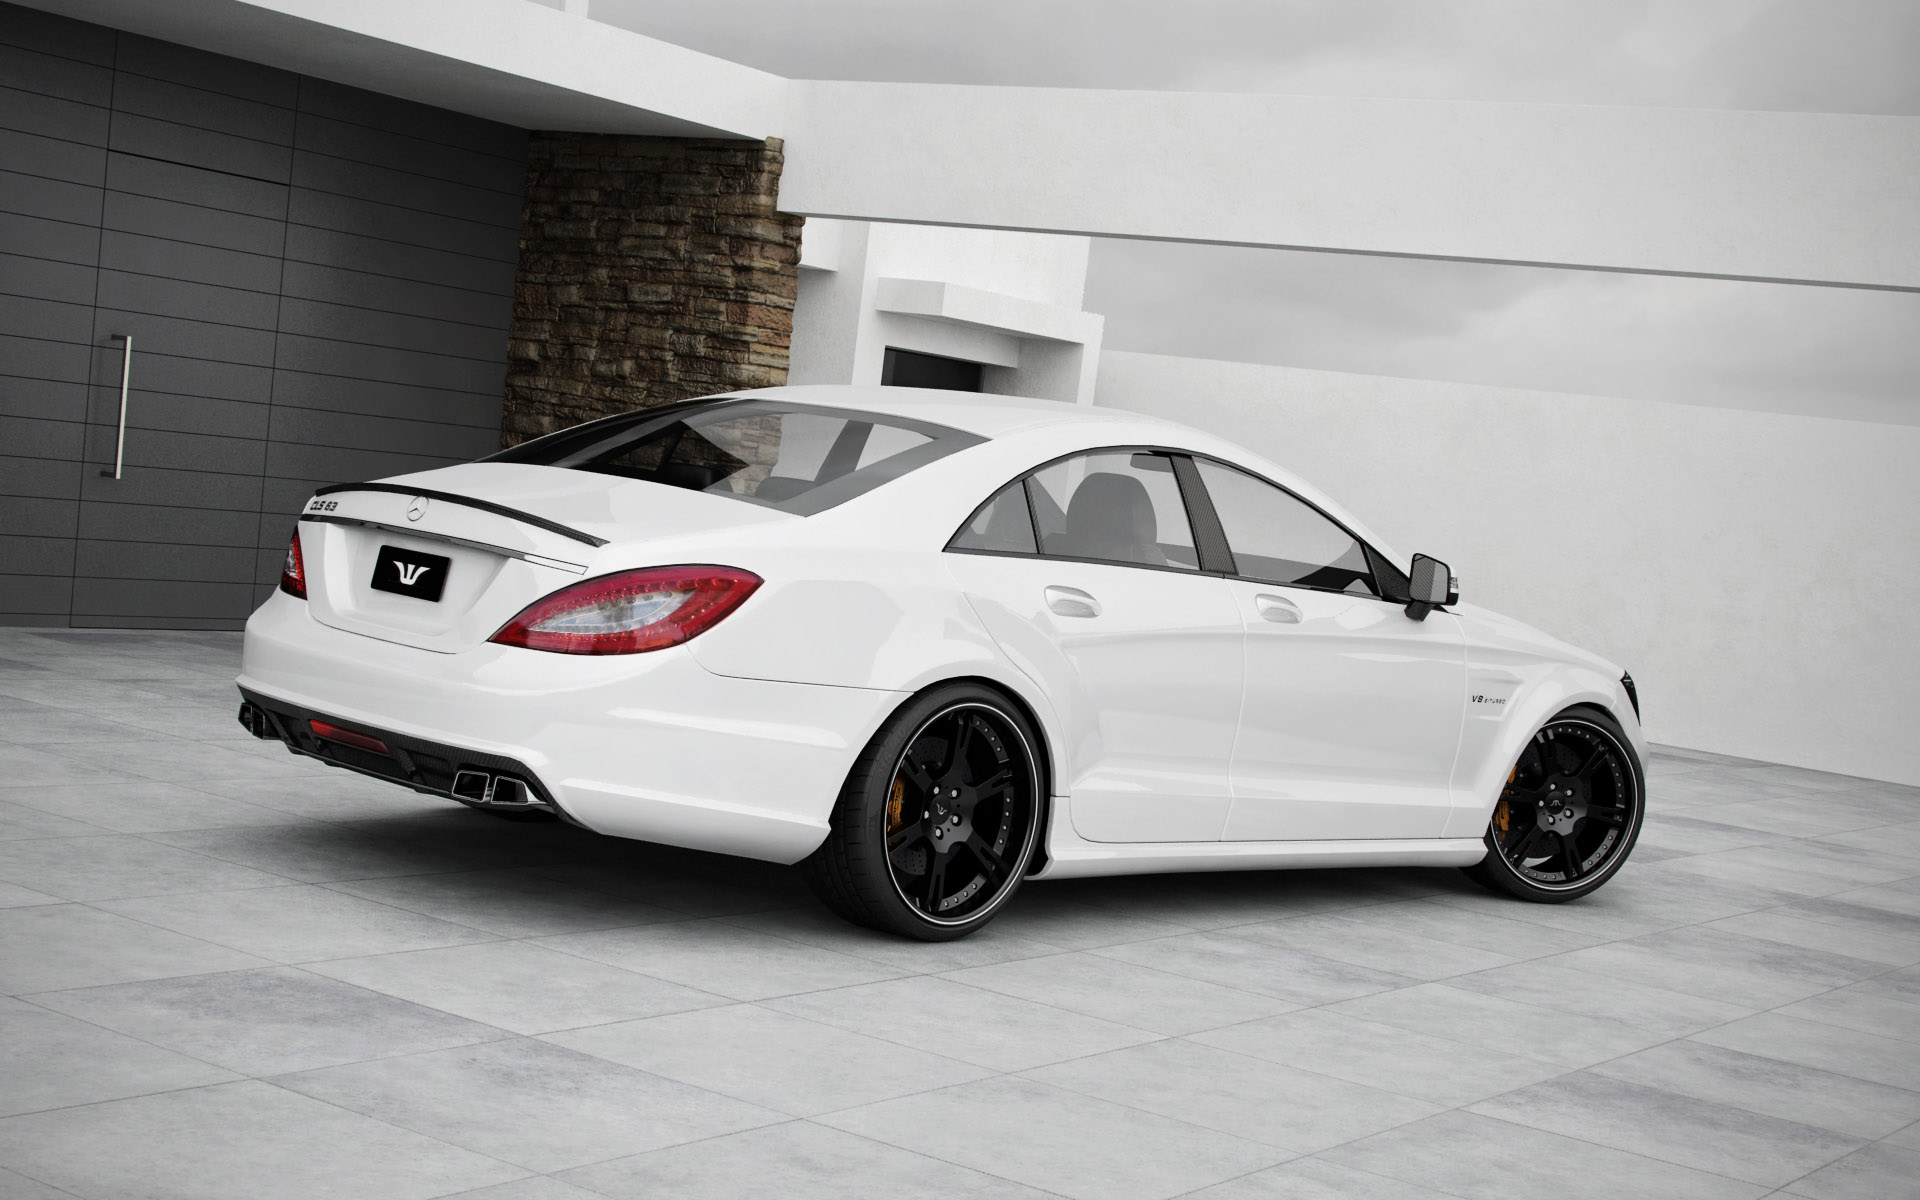 2011 wheelsandmore mercedes benz cls63 amg dark cars wallpapers. Black Bedroom Furniture Sets. Home Design Ideas